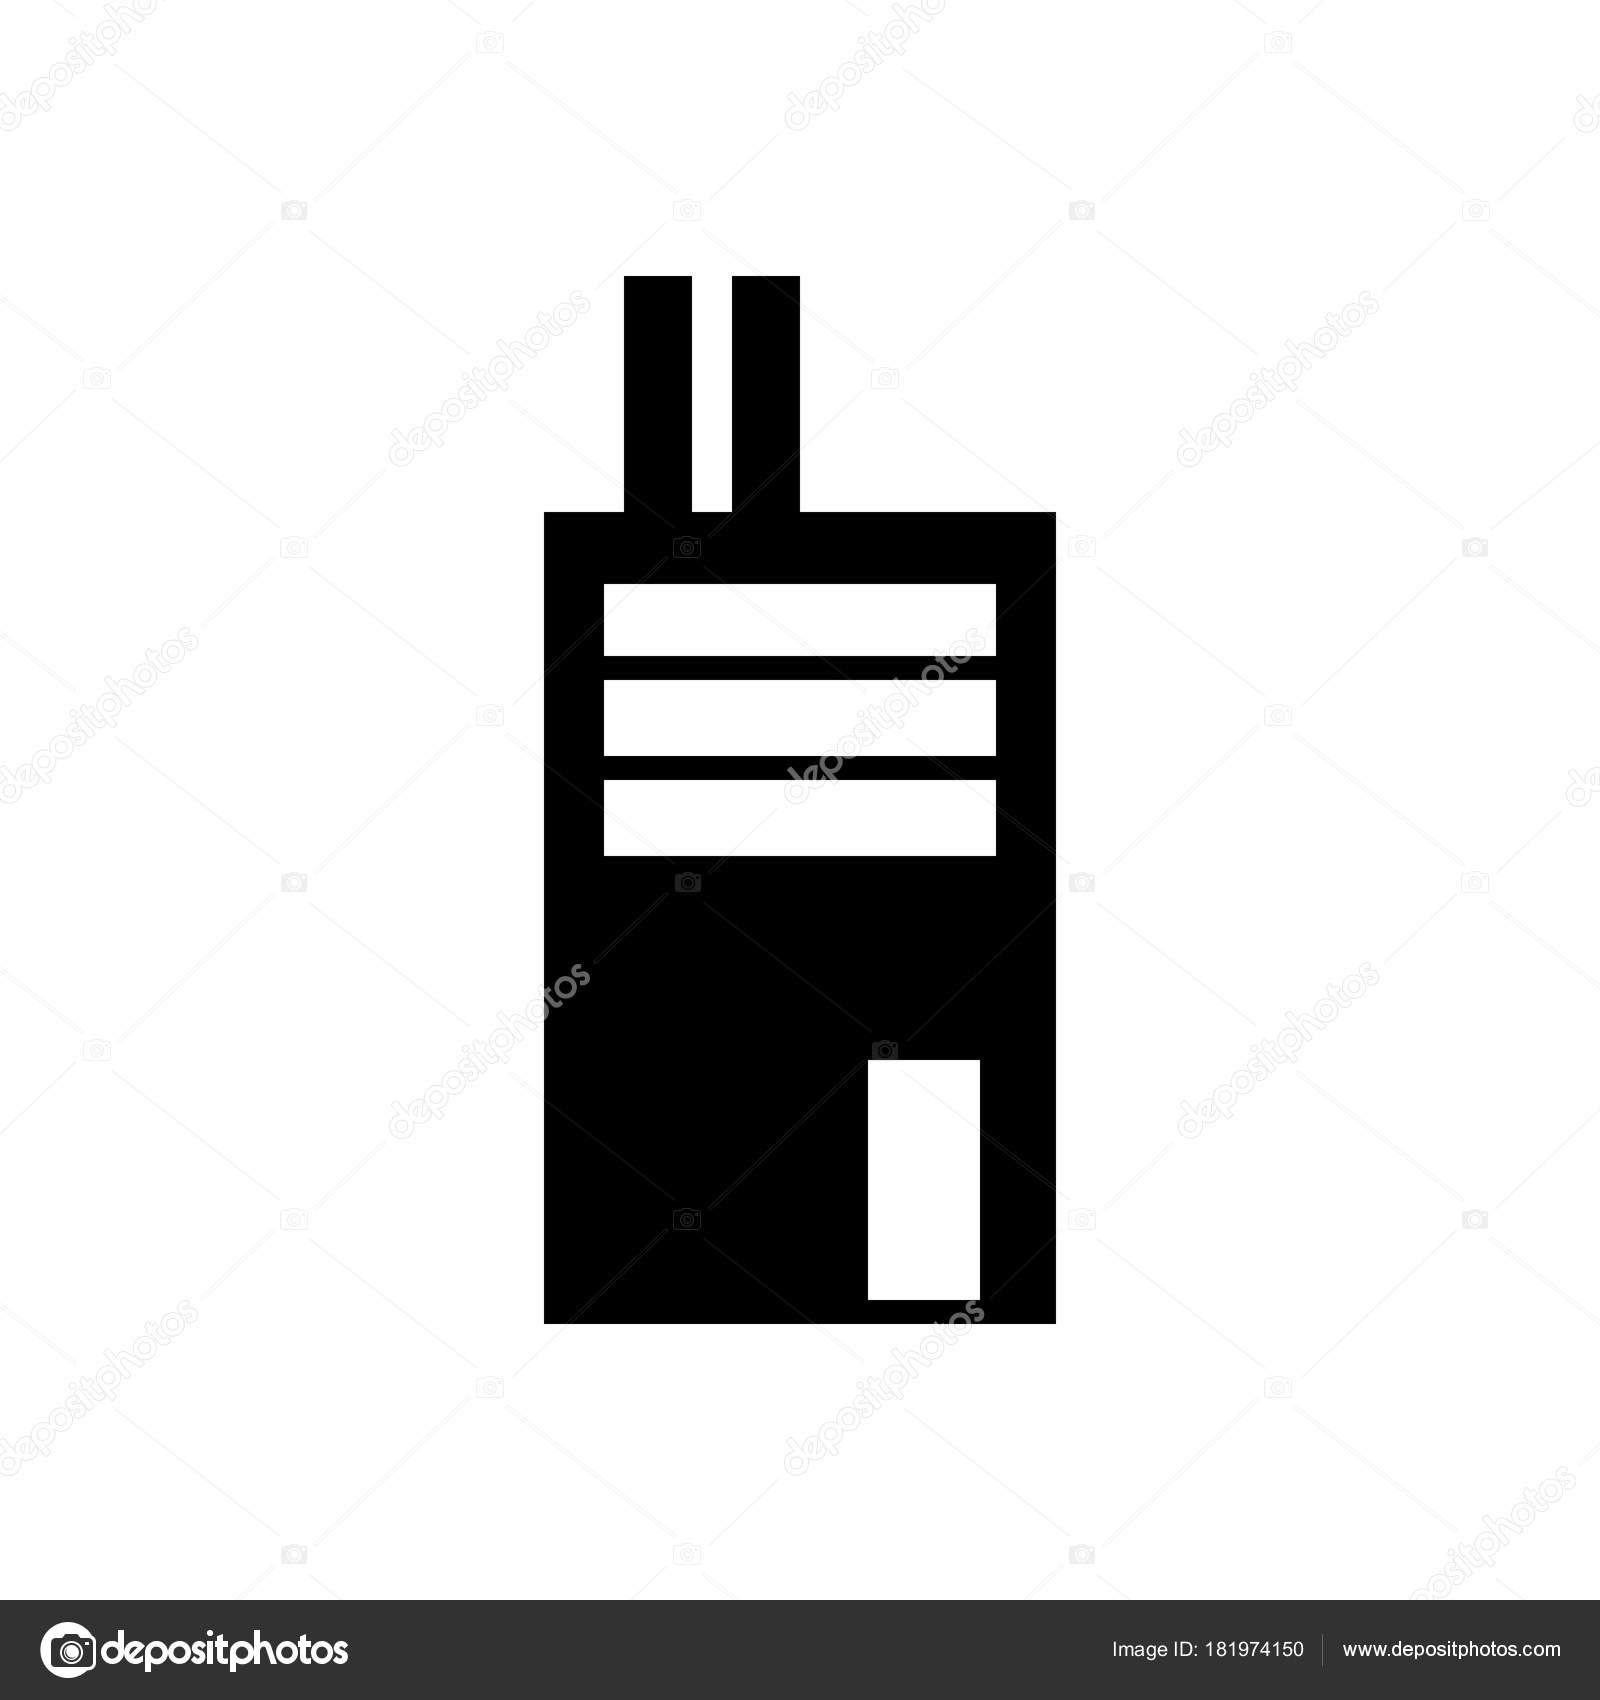 Factory icon solid illustration pictogram isolated on on white factory icon solid illustration pictogram isolated on on white background building sign trendy flat style for graphic design logo web site social media ccuart Image collections